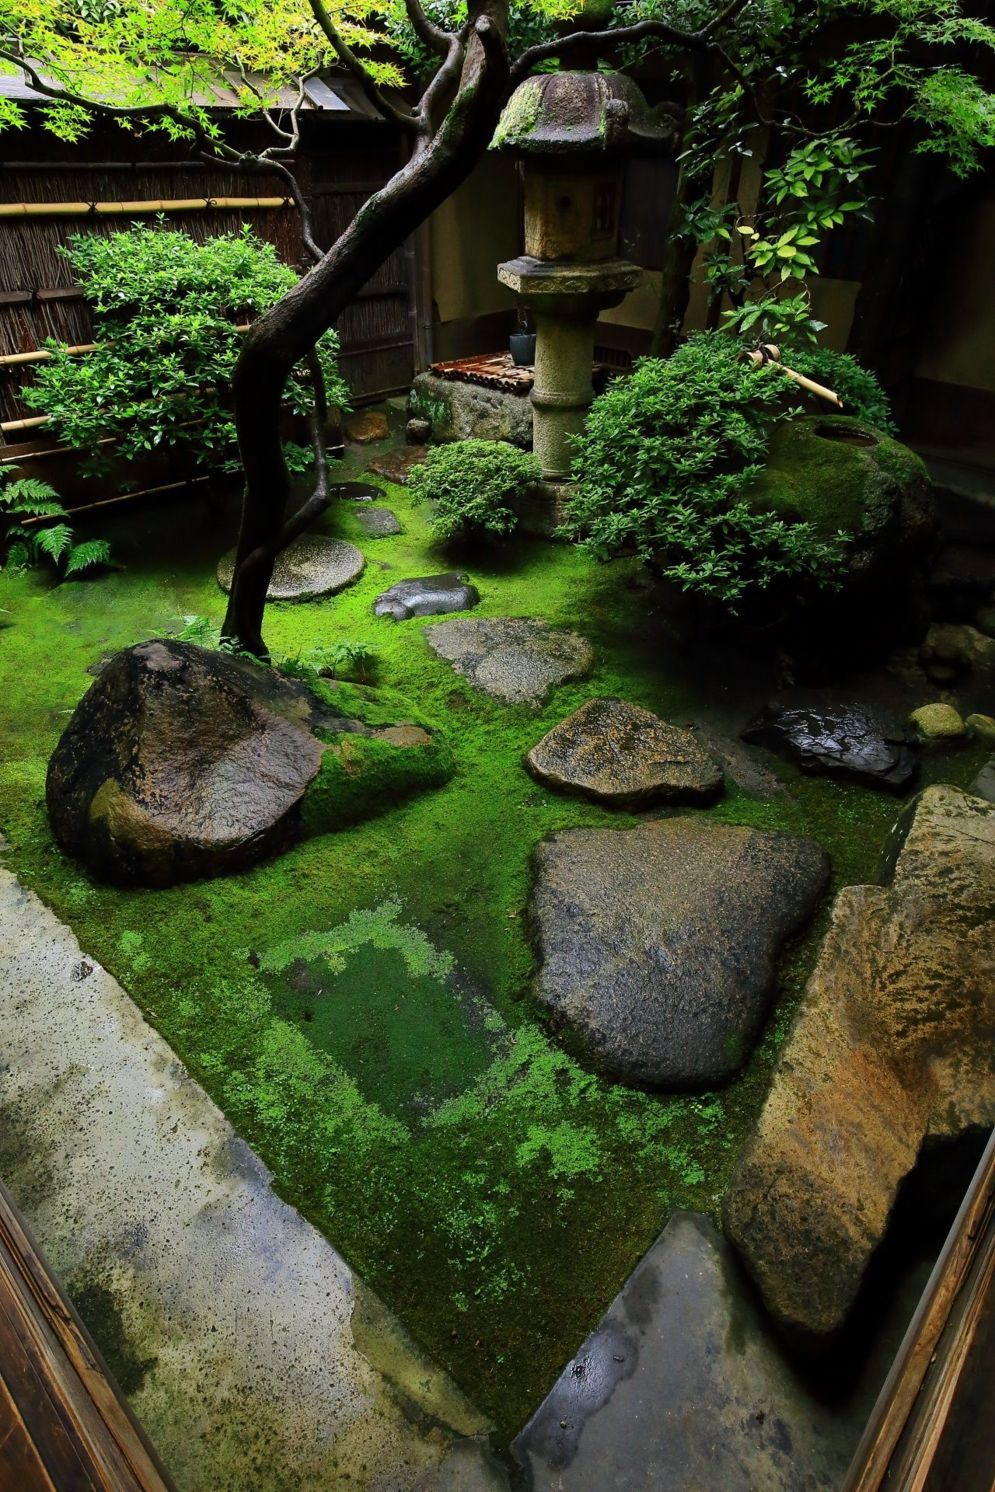 Most Beautiful Zen Garden Styles to Improve Your Home with Peaceful and Harmonious Natural Arts | SHAIROOM.COM #zengardens